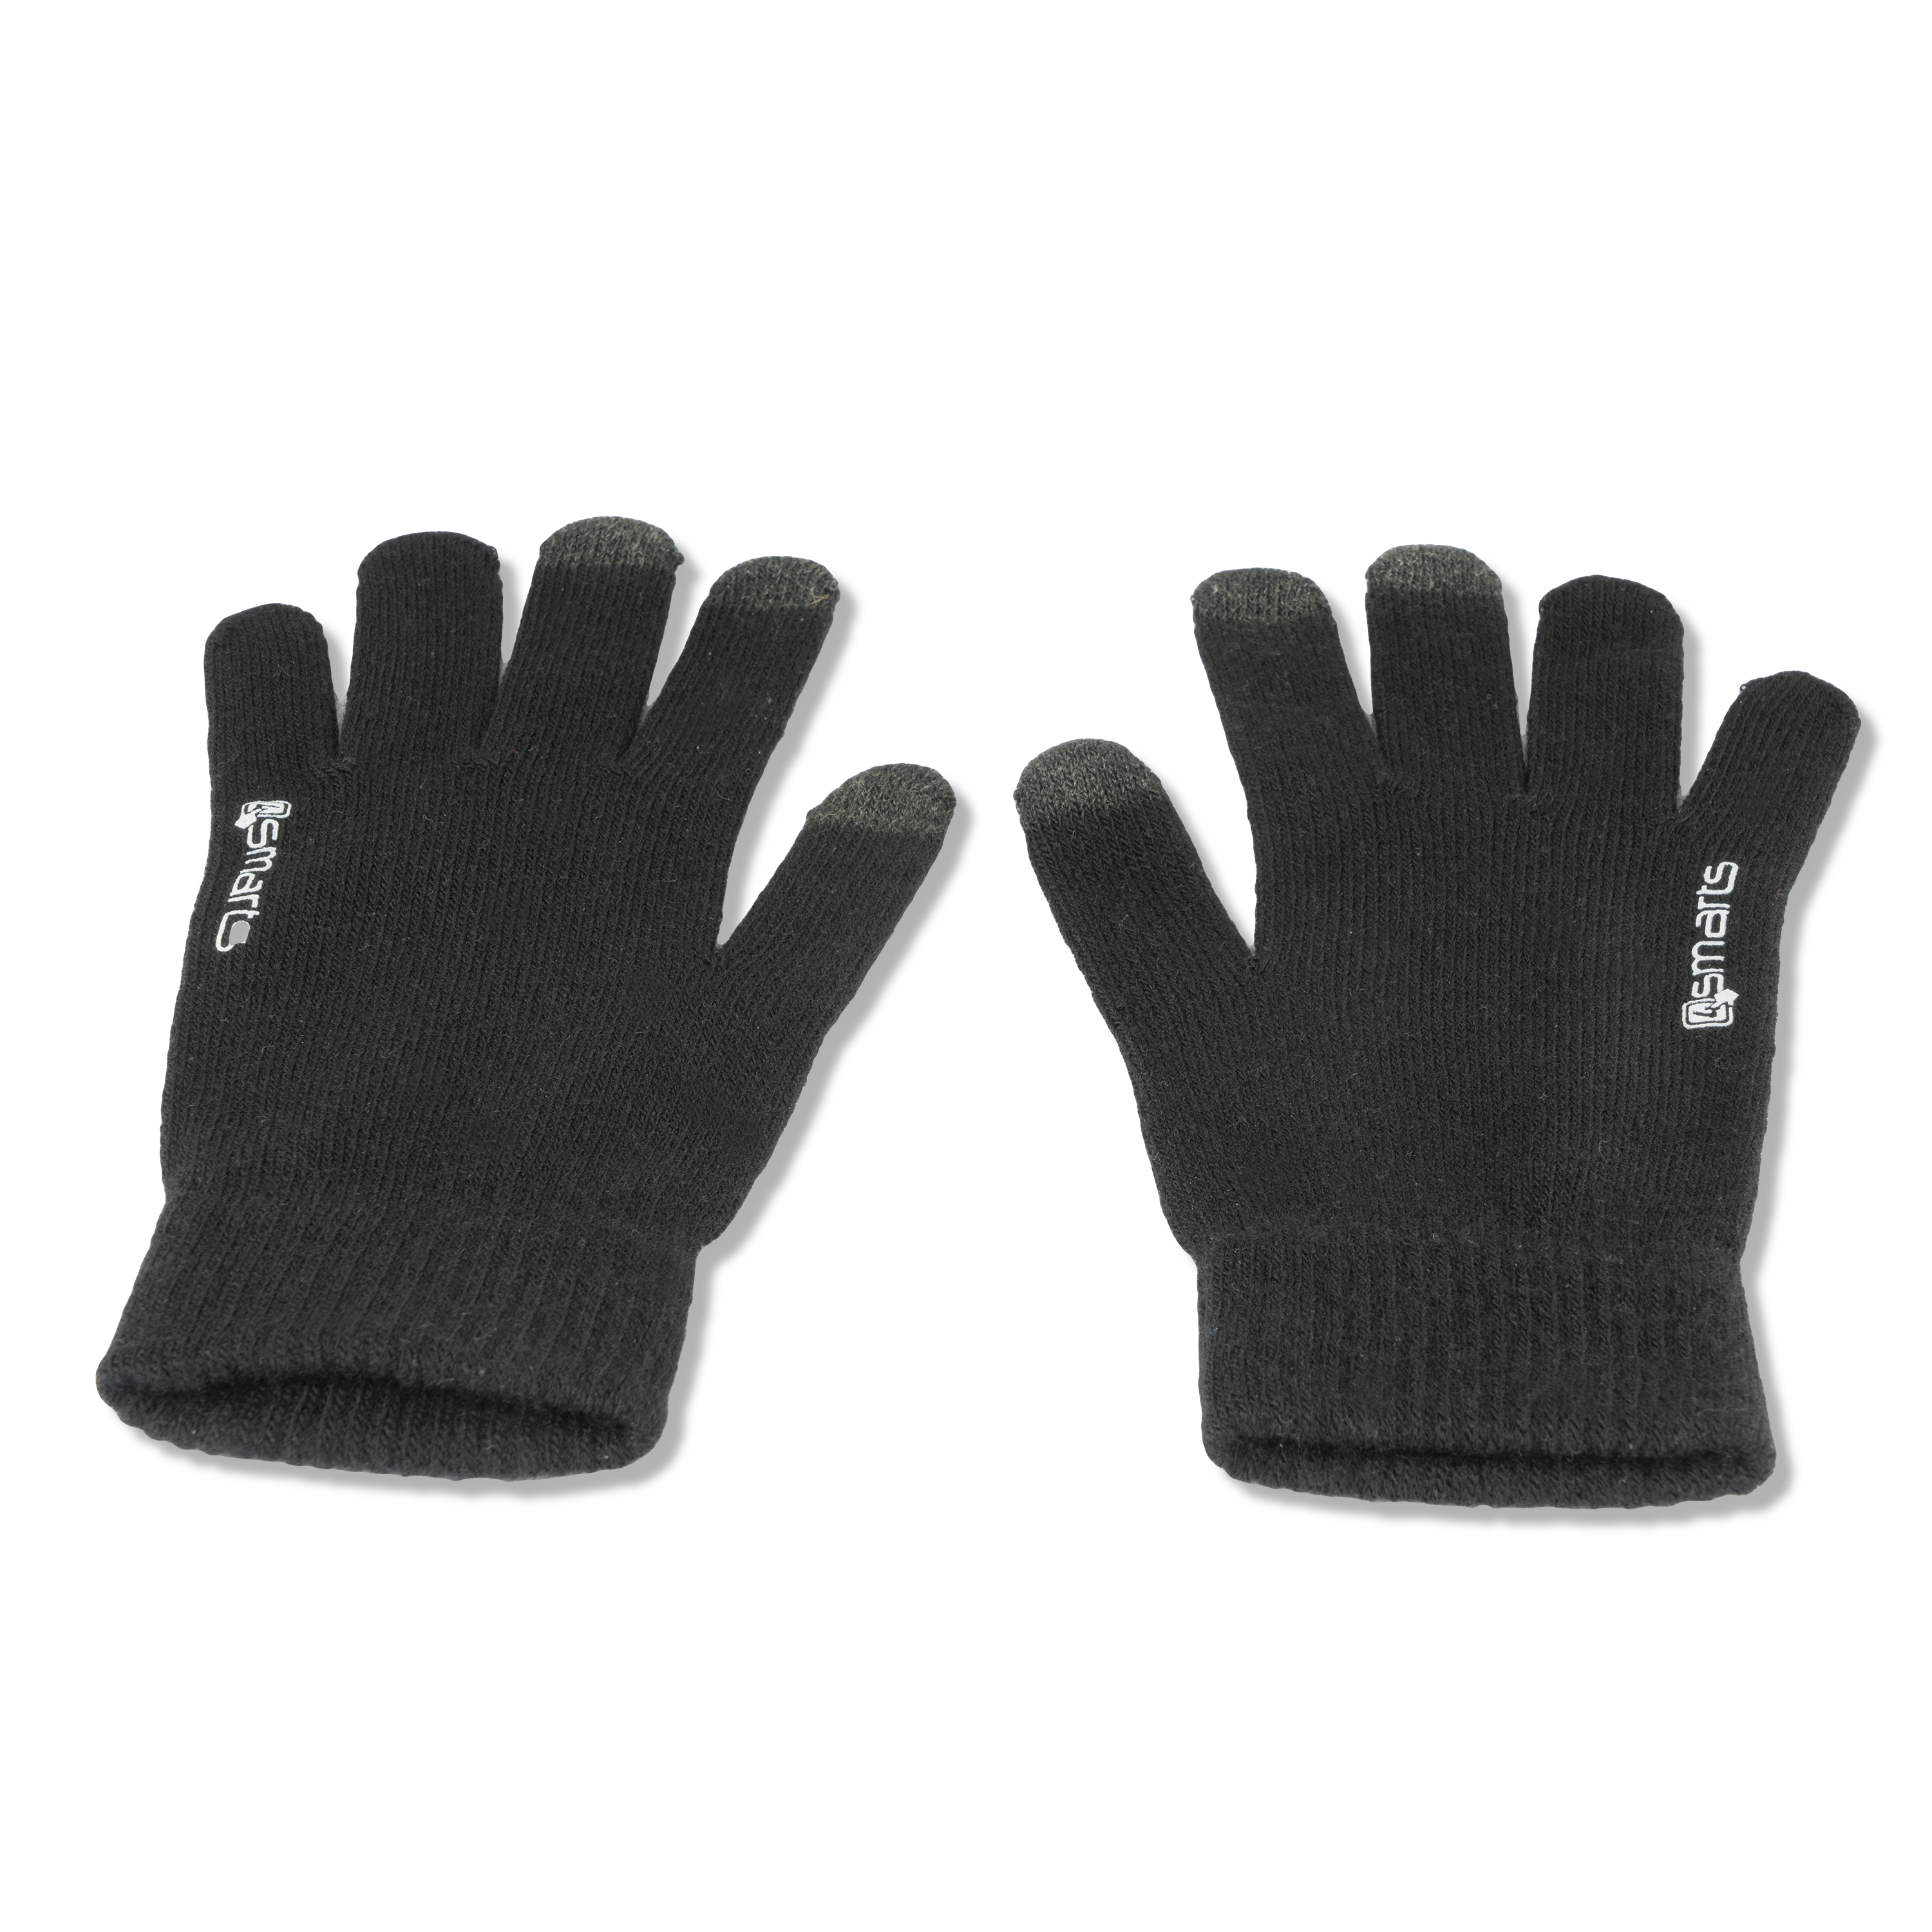 4smarts Winter Gloves Touch Unisex Size S/M - зимни ръкавици за тъч екрани S/M размер (черен)